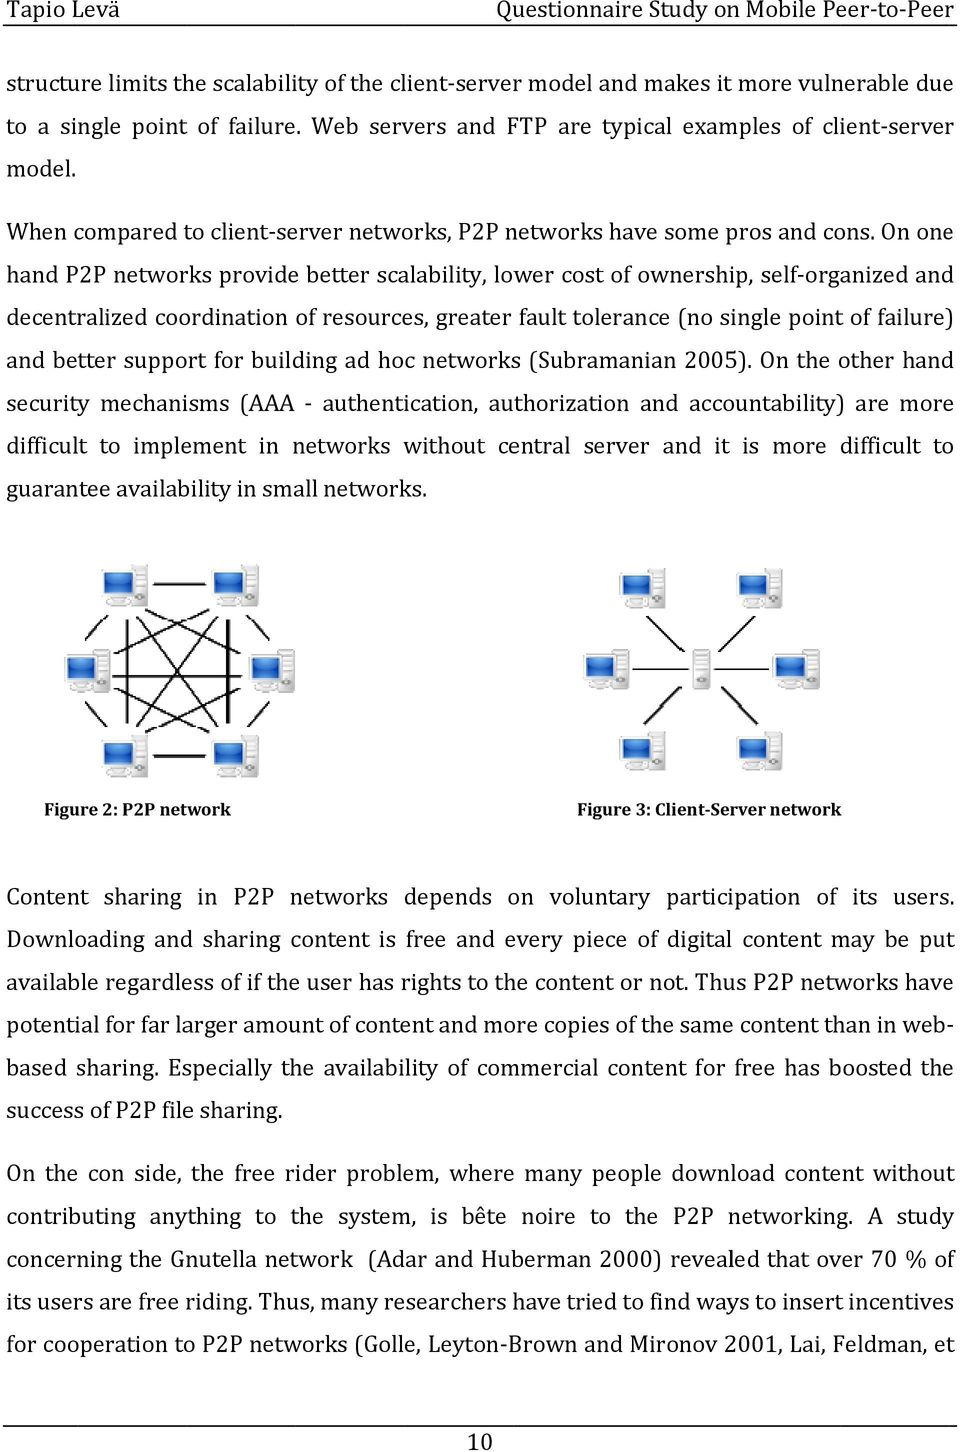 On one hand P2P networks provide better scalability, lower cost of ownership, self-organized and decentralized coordination of resources, greater fault tolerance (no single point of failure) and